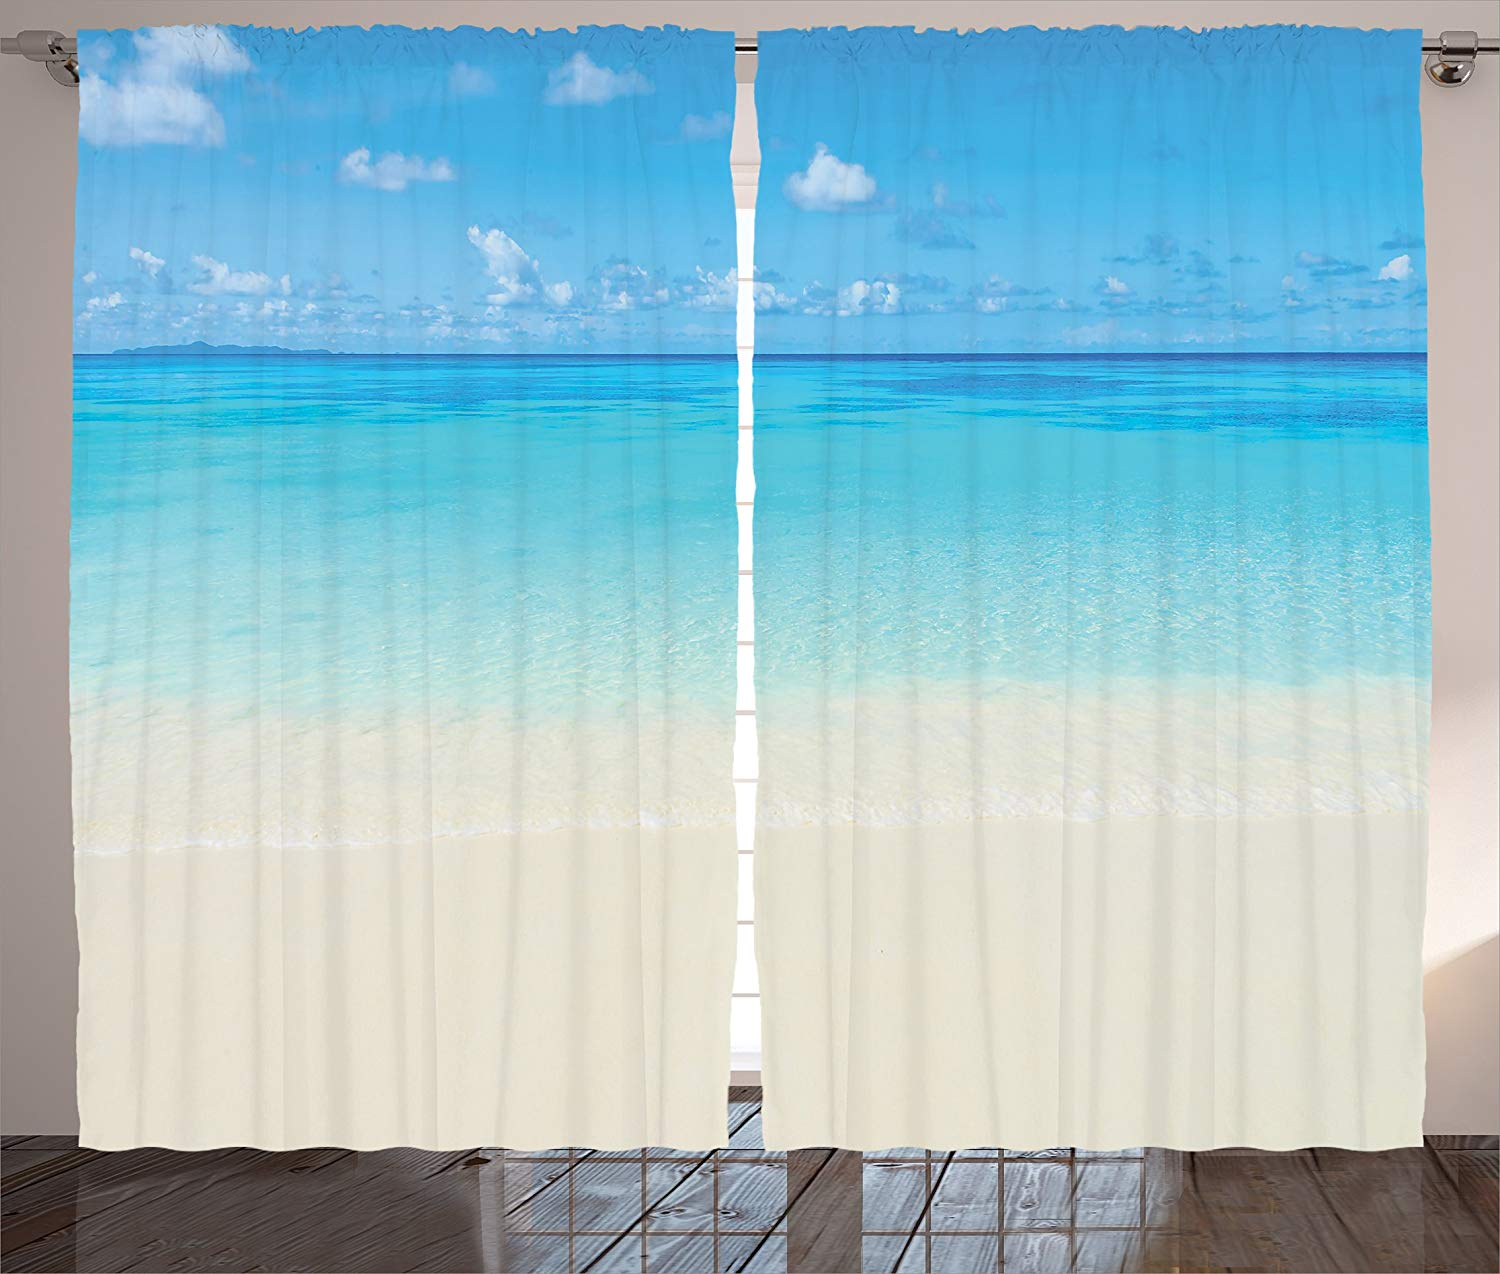 Ocean Decor Curtains 2 Panel Set Paradise Beach in Tropical Caribbean Sea with Fantastic Sky View Calm Beach House Theme Living image